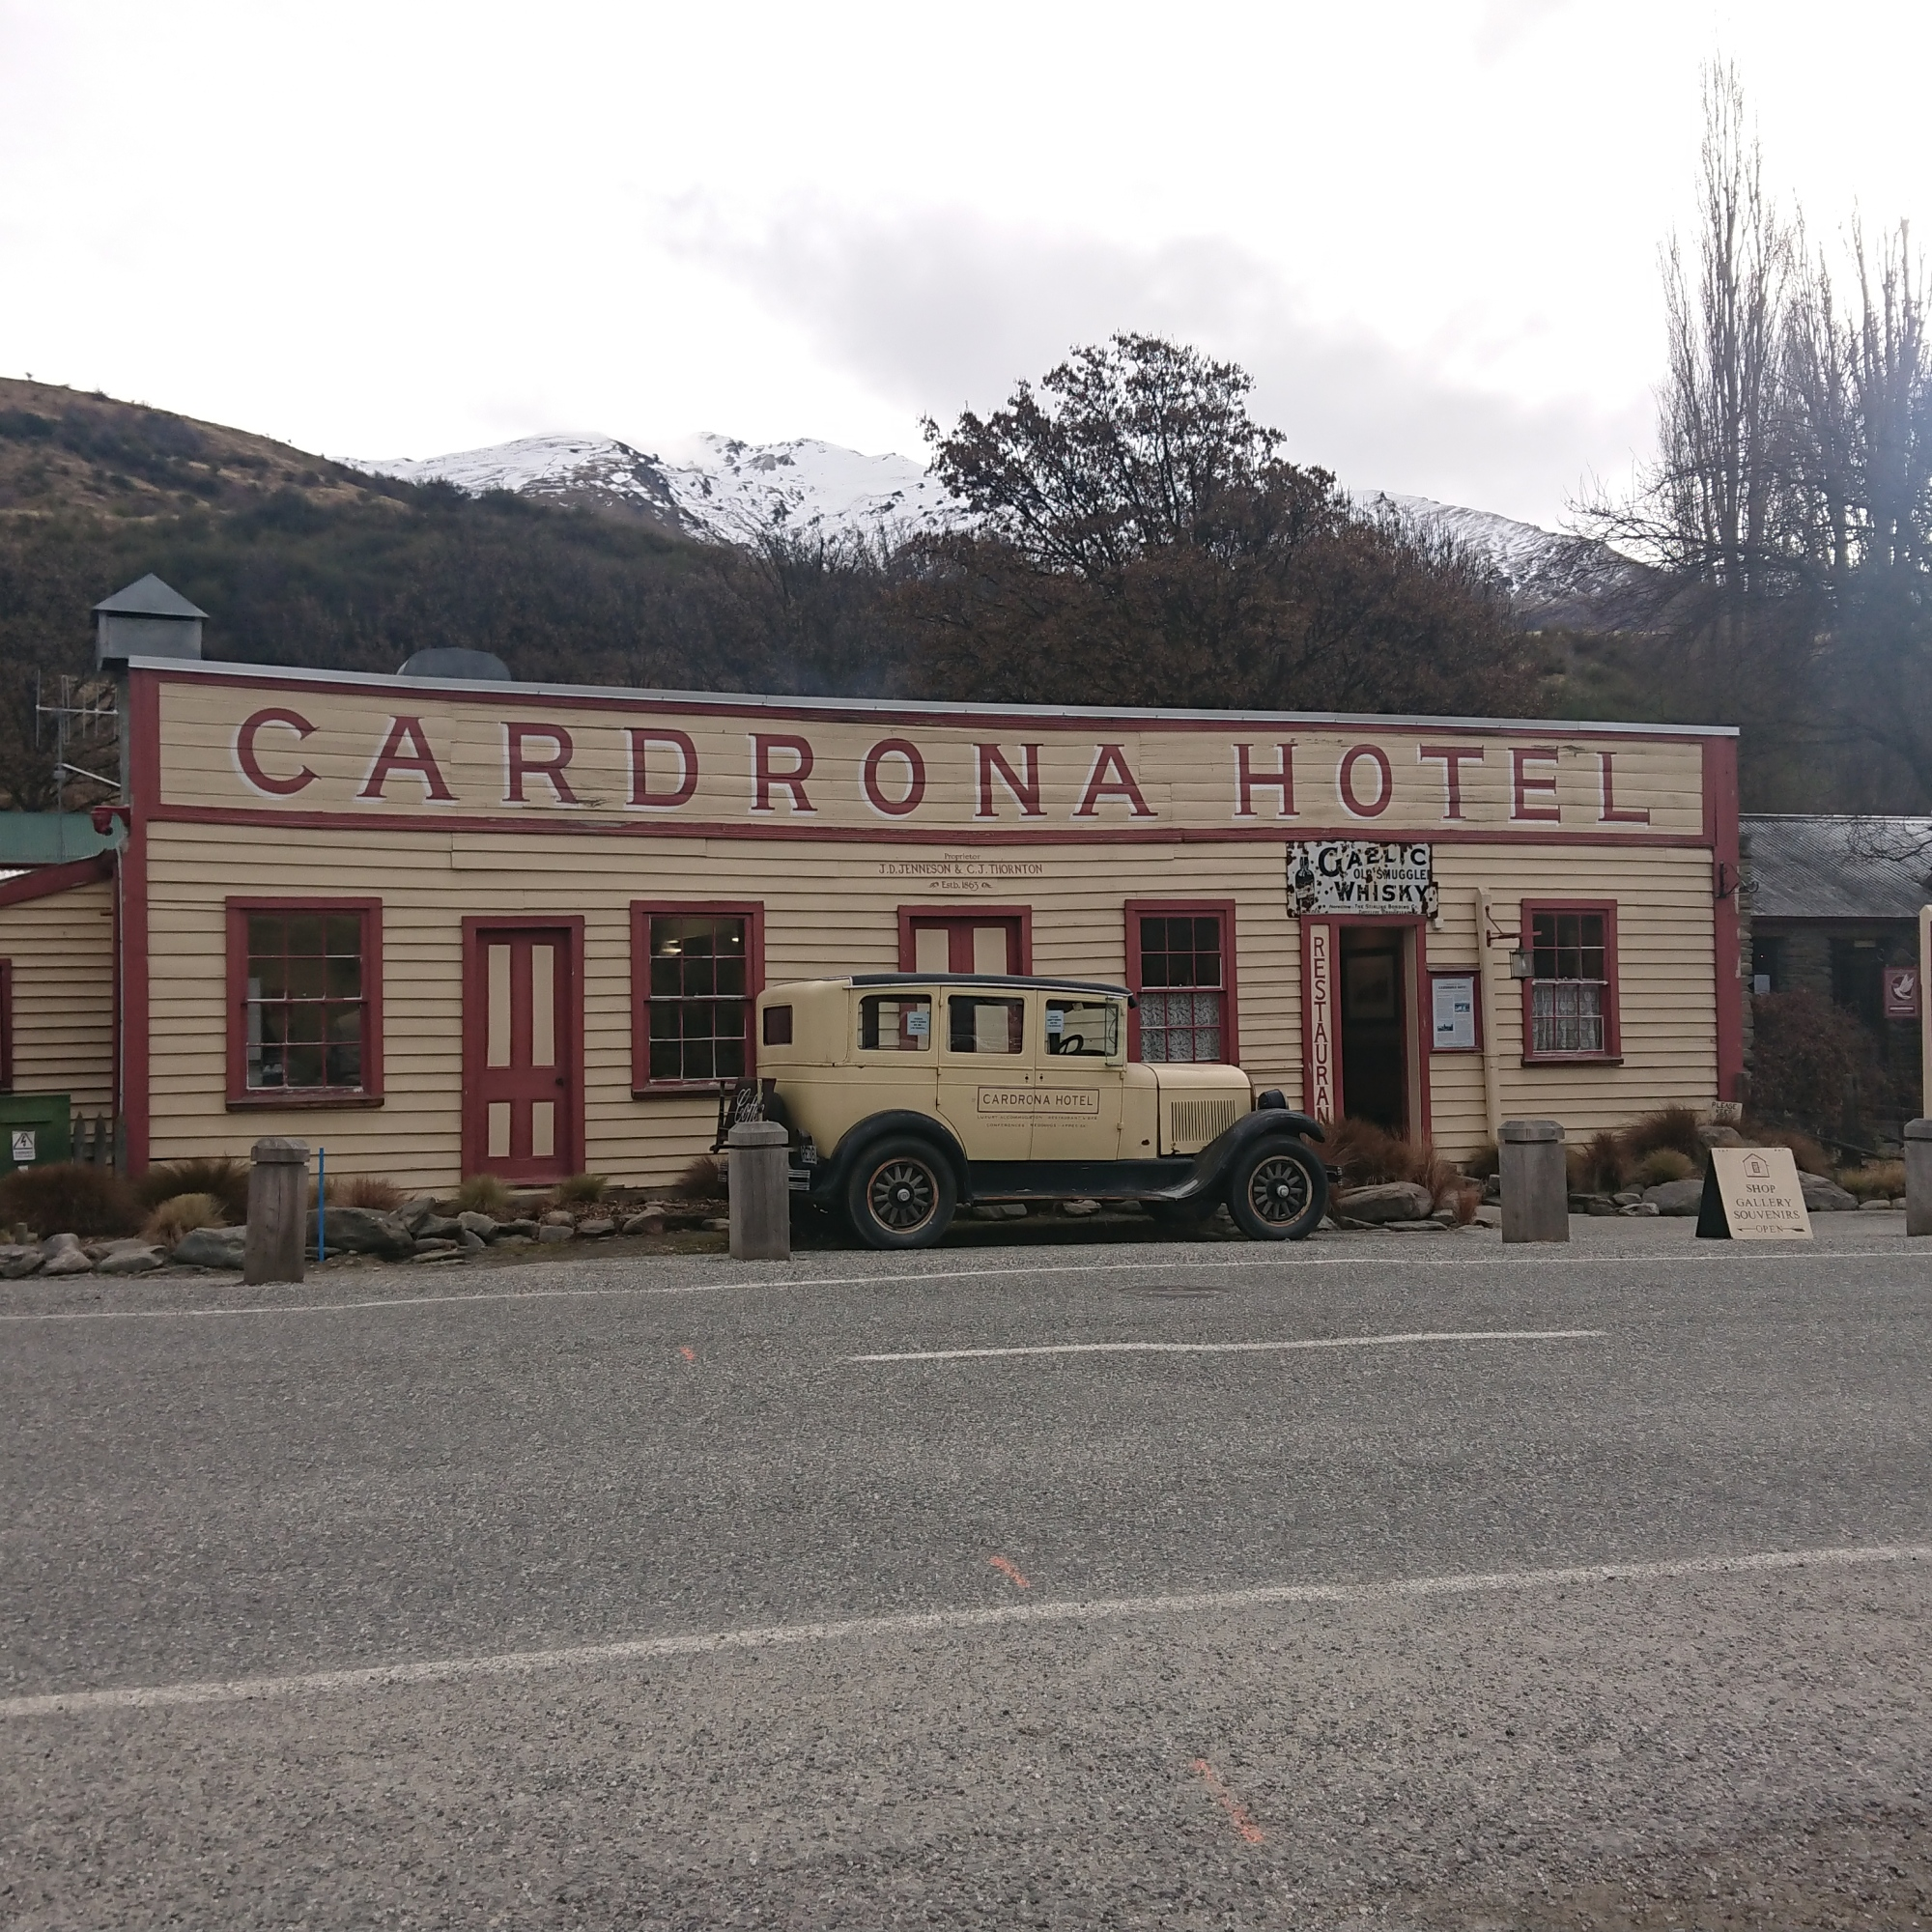 The Cardrona Hotel, one of the oldest pubs in New Zealand